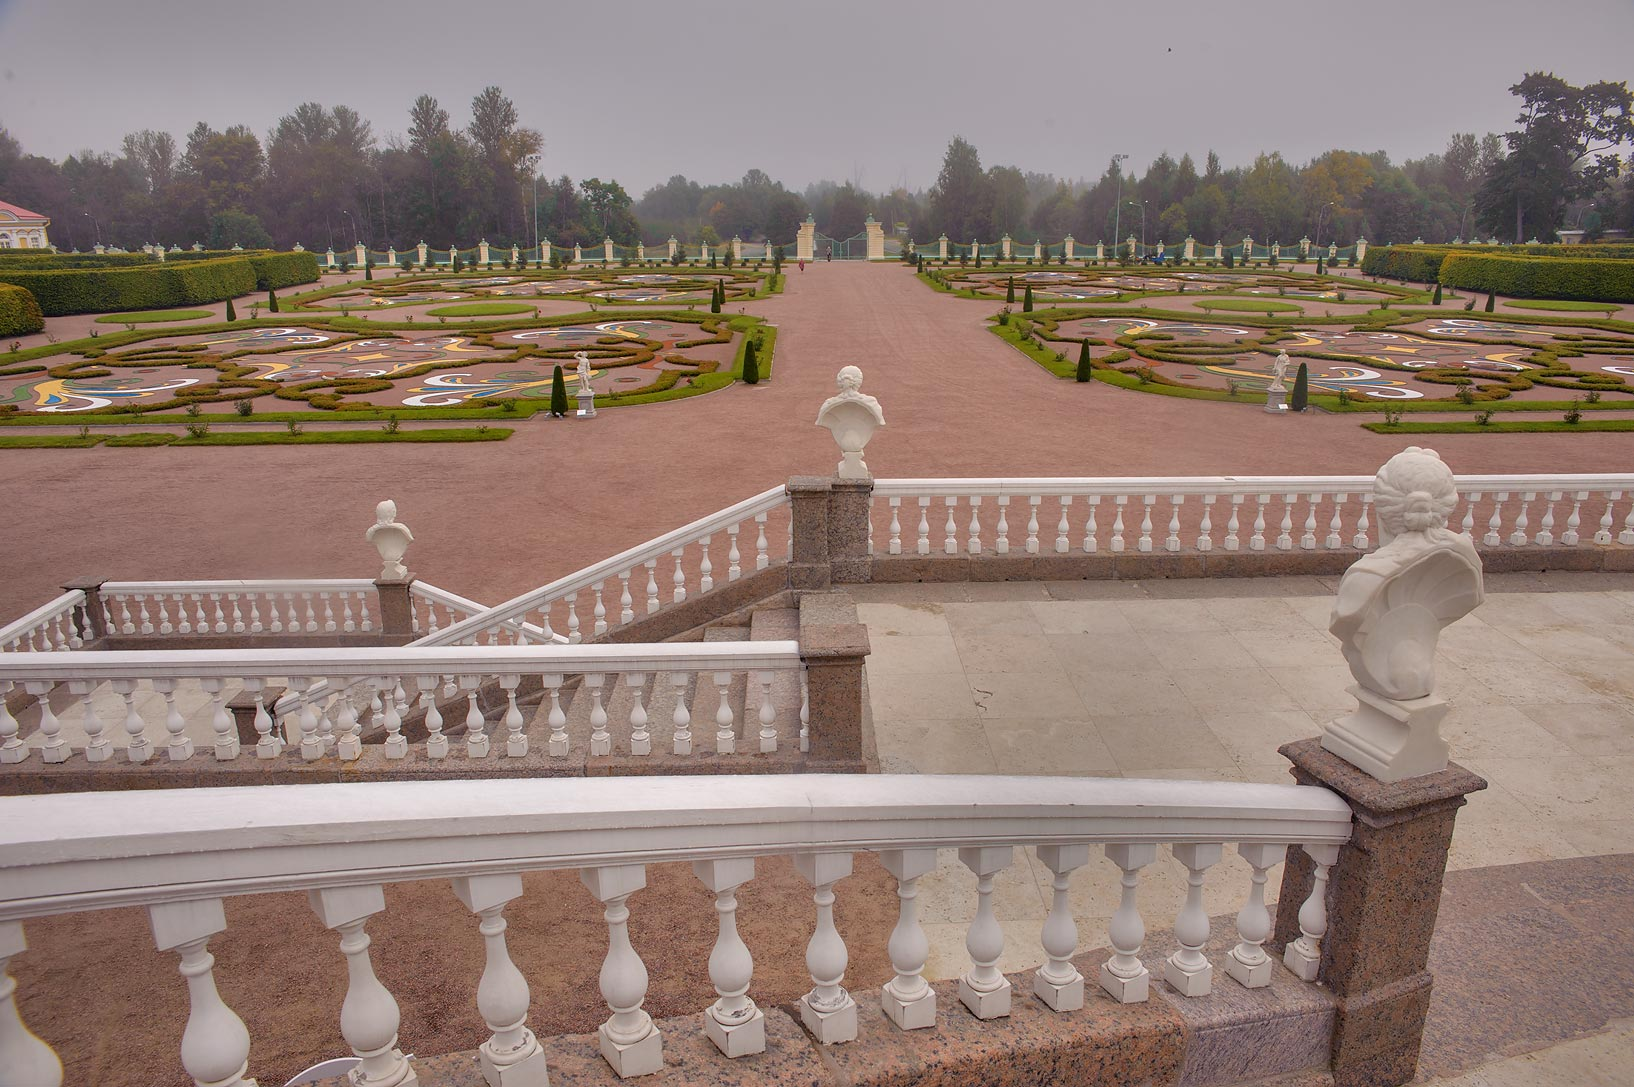 Lower garden from grand staircase of Great...West from St.Petersburg, Russia